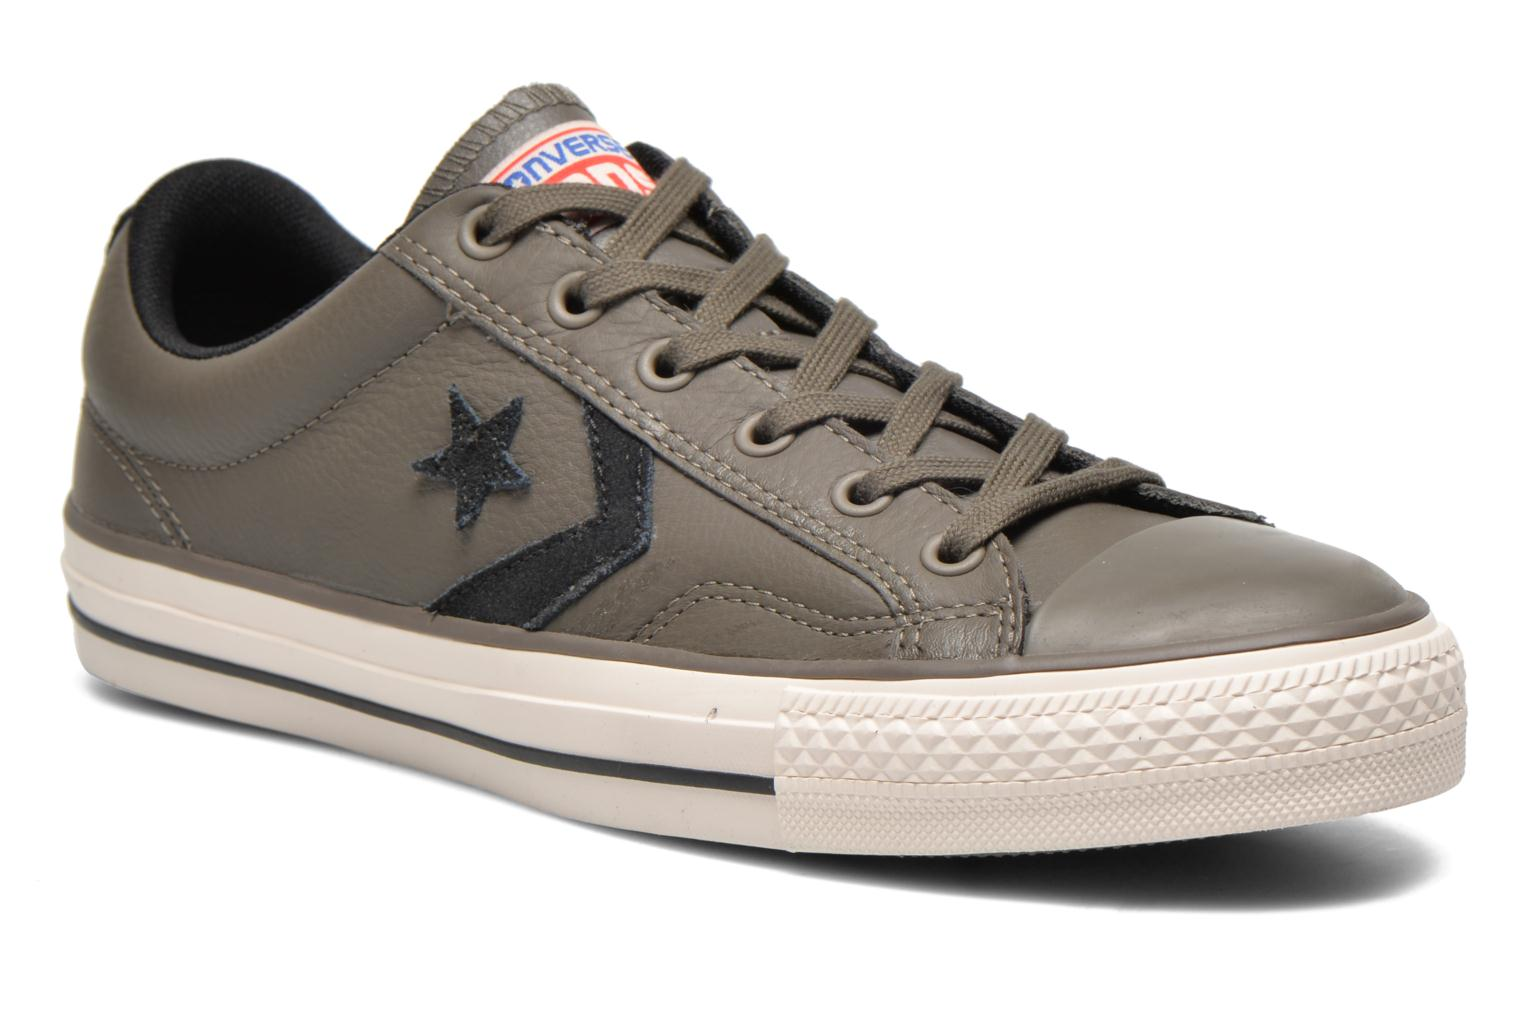 BALLERINE - Converse fundamental